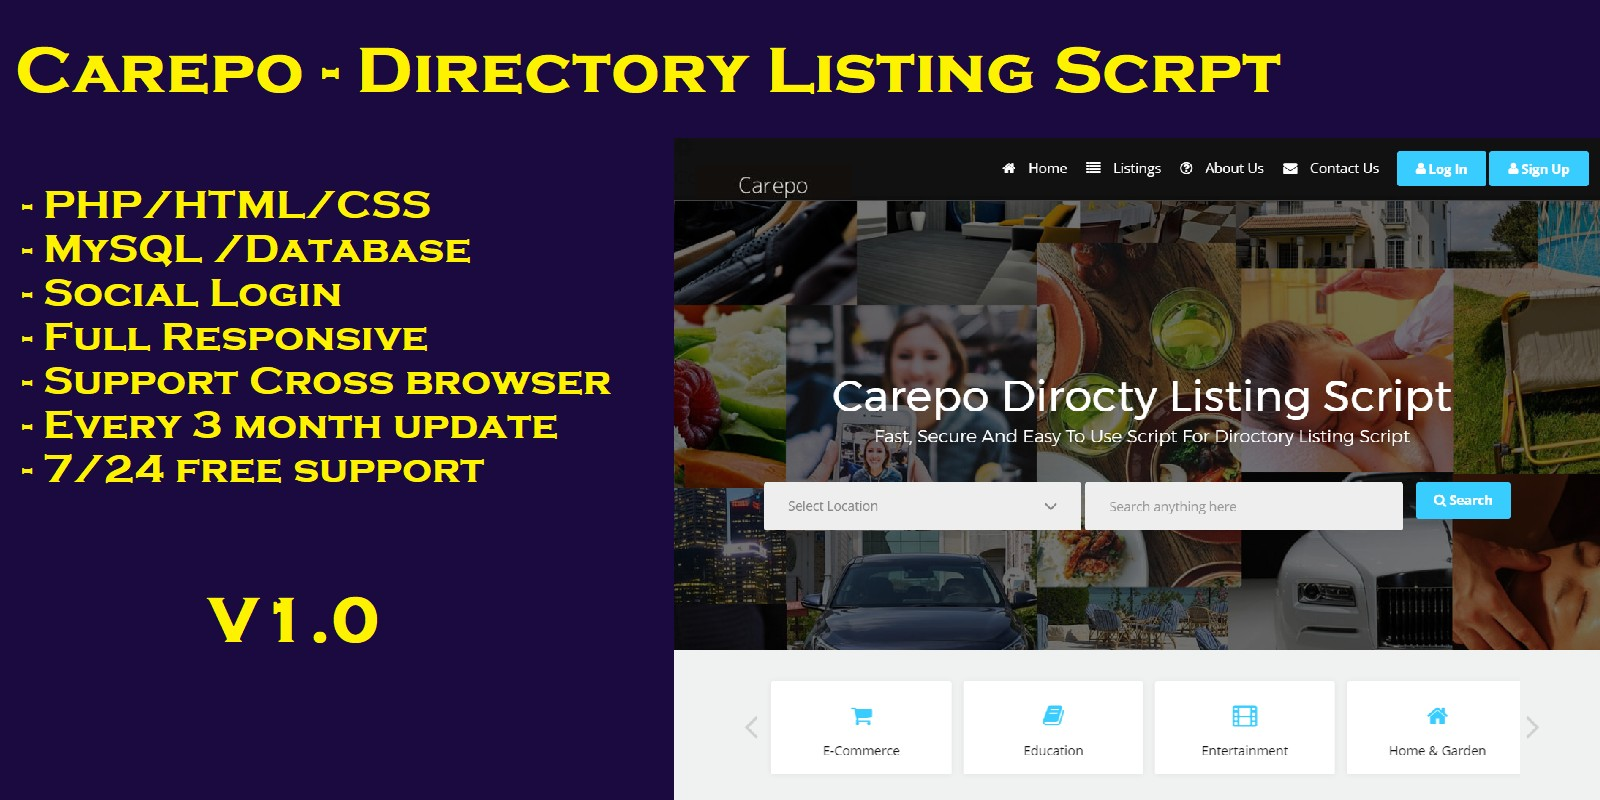 Carepo - Directory Listing Script PHP